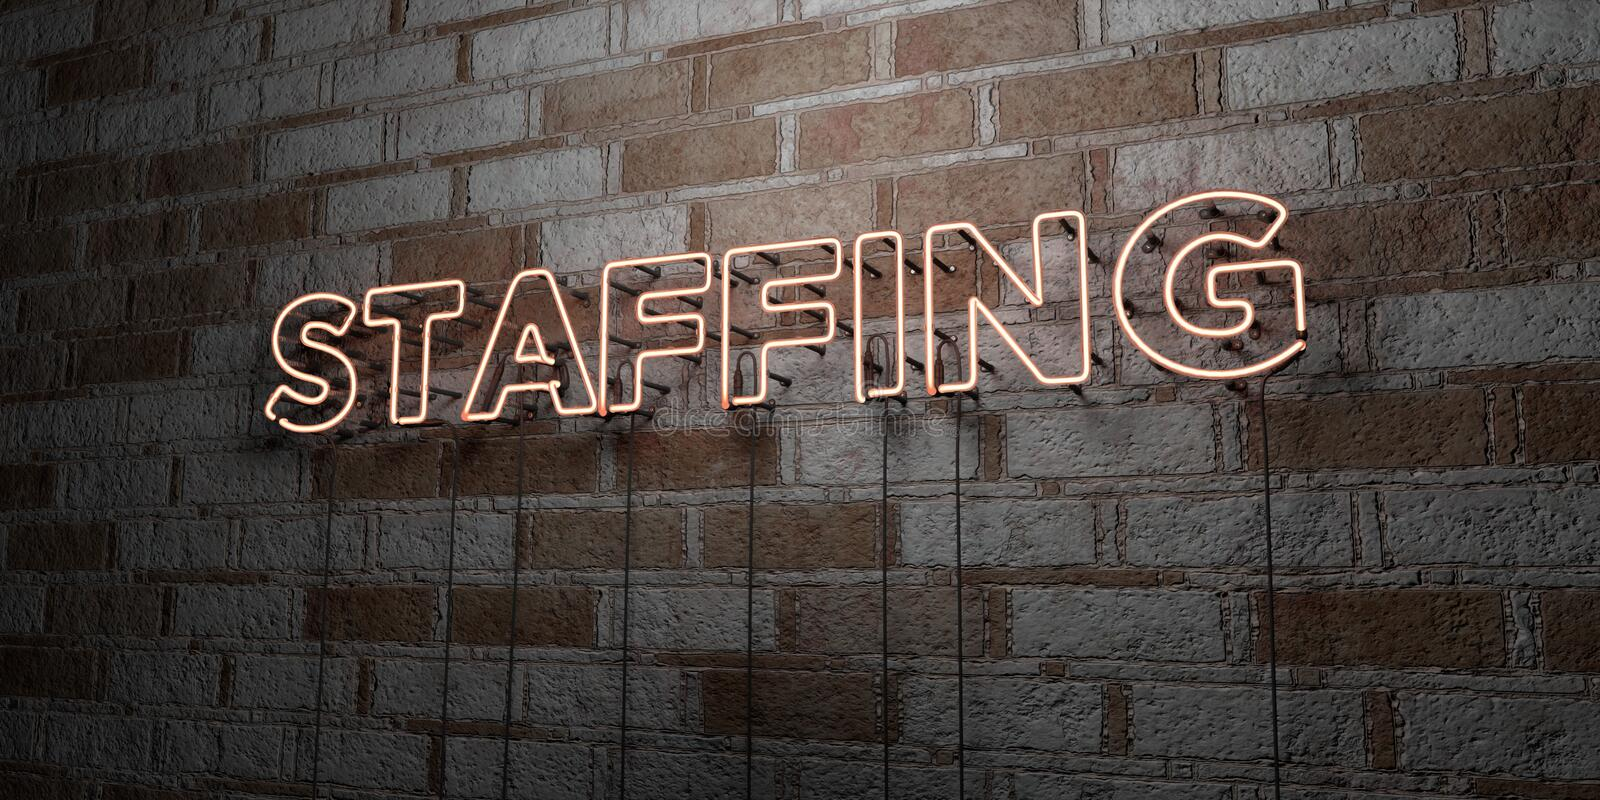 STAFFING - Glowing Neon Sign on stonework wall - 3D rendered royalty free stock illustration. Can be used for online banner ads and direct mailers vector illustration